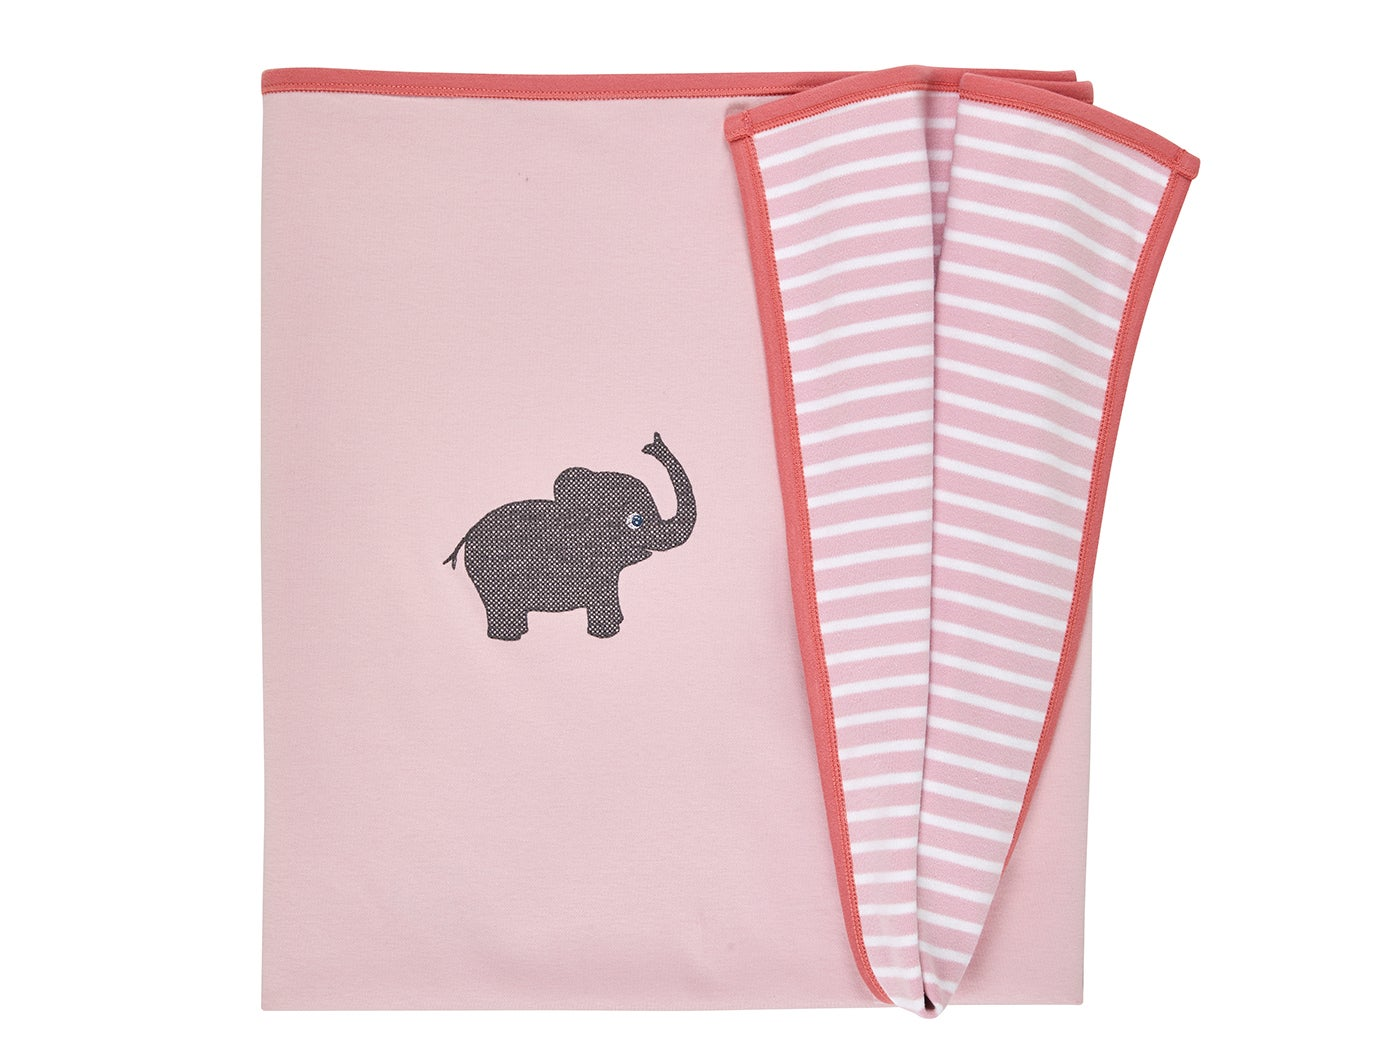 Image of Sale Decken mit Elefant